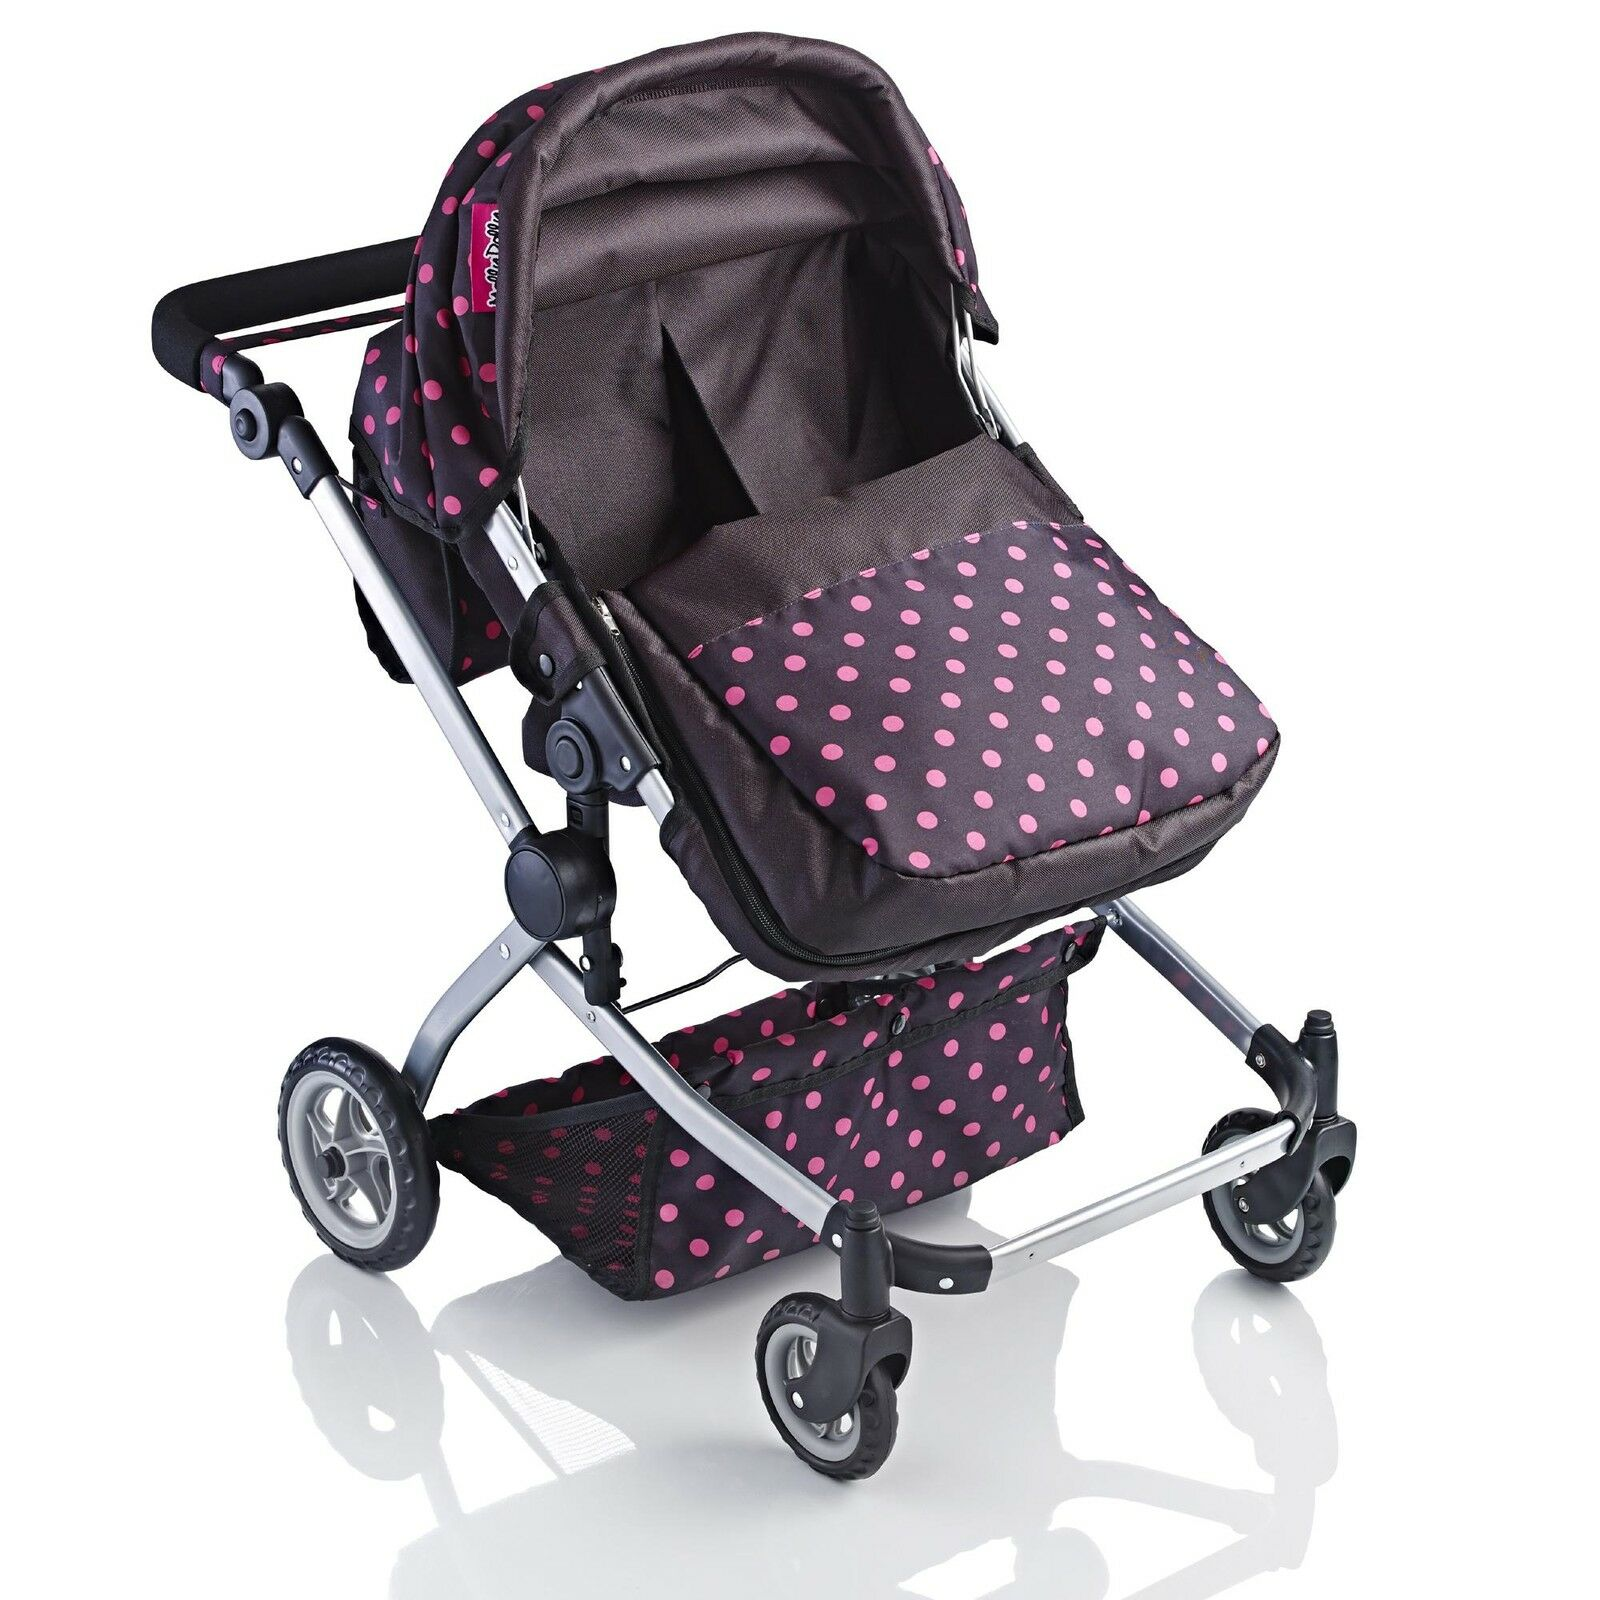 Molly Dolly 2 in 1 Twin Deluxe Babyboo Doll Stroller/Pram Buggy Girls Junior Toy 4